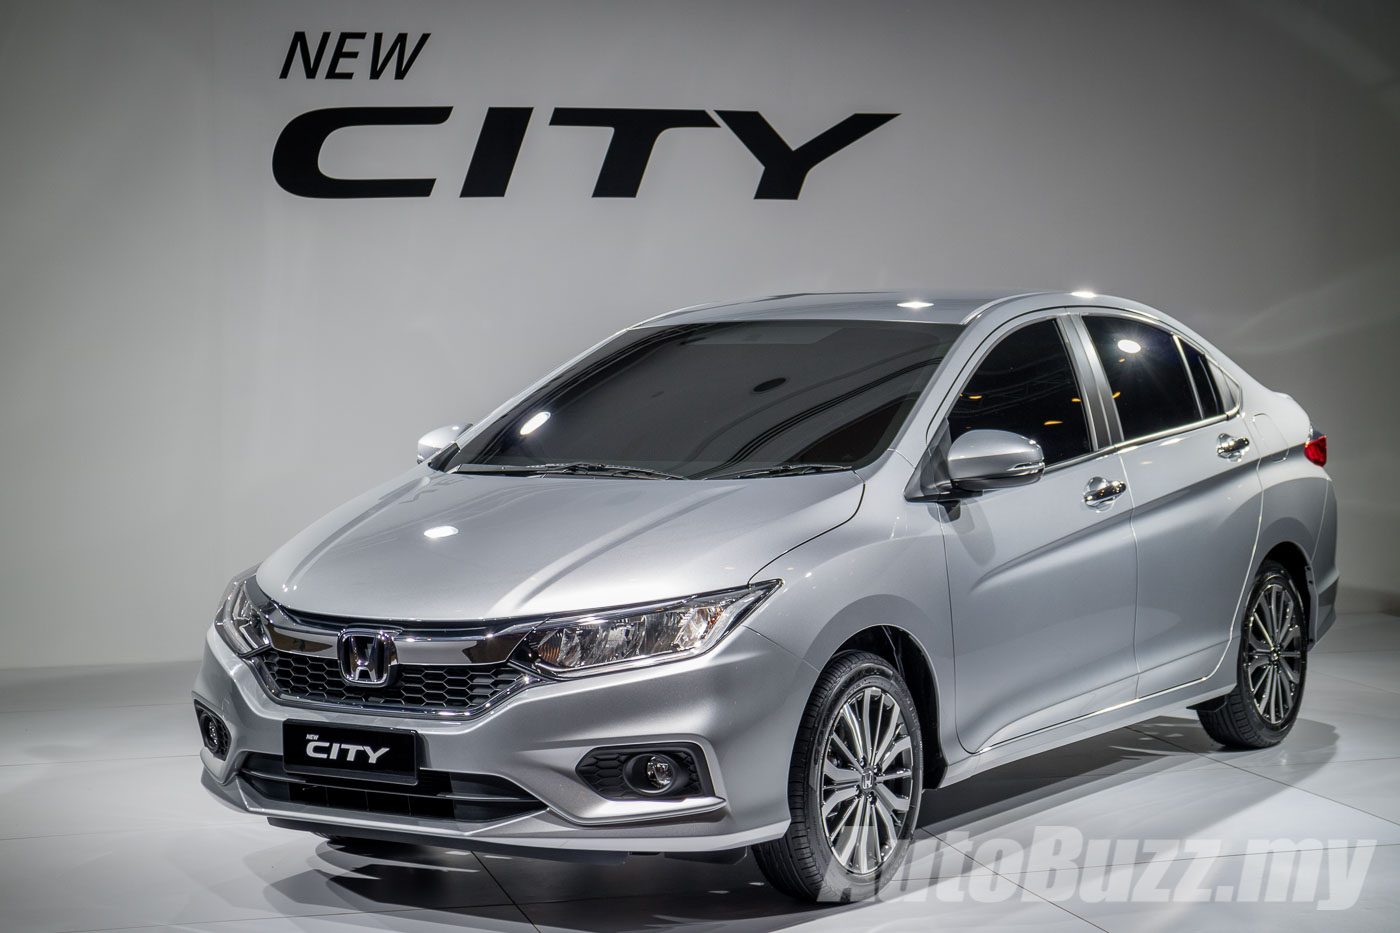 Honda Civic 2017 >> 2017 Honda City facelift previewed, VSA and keyless entry standard - AutoBuzz.my